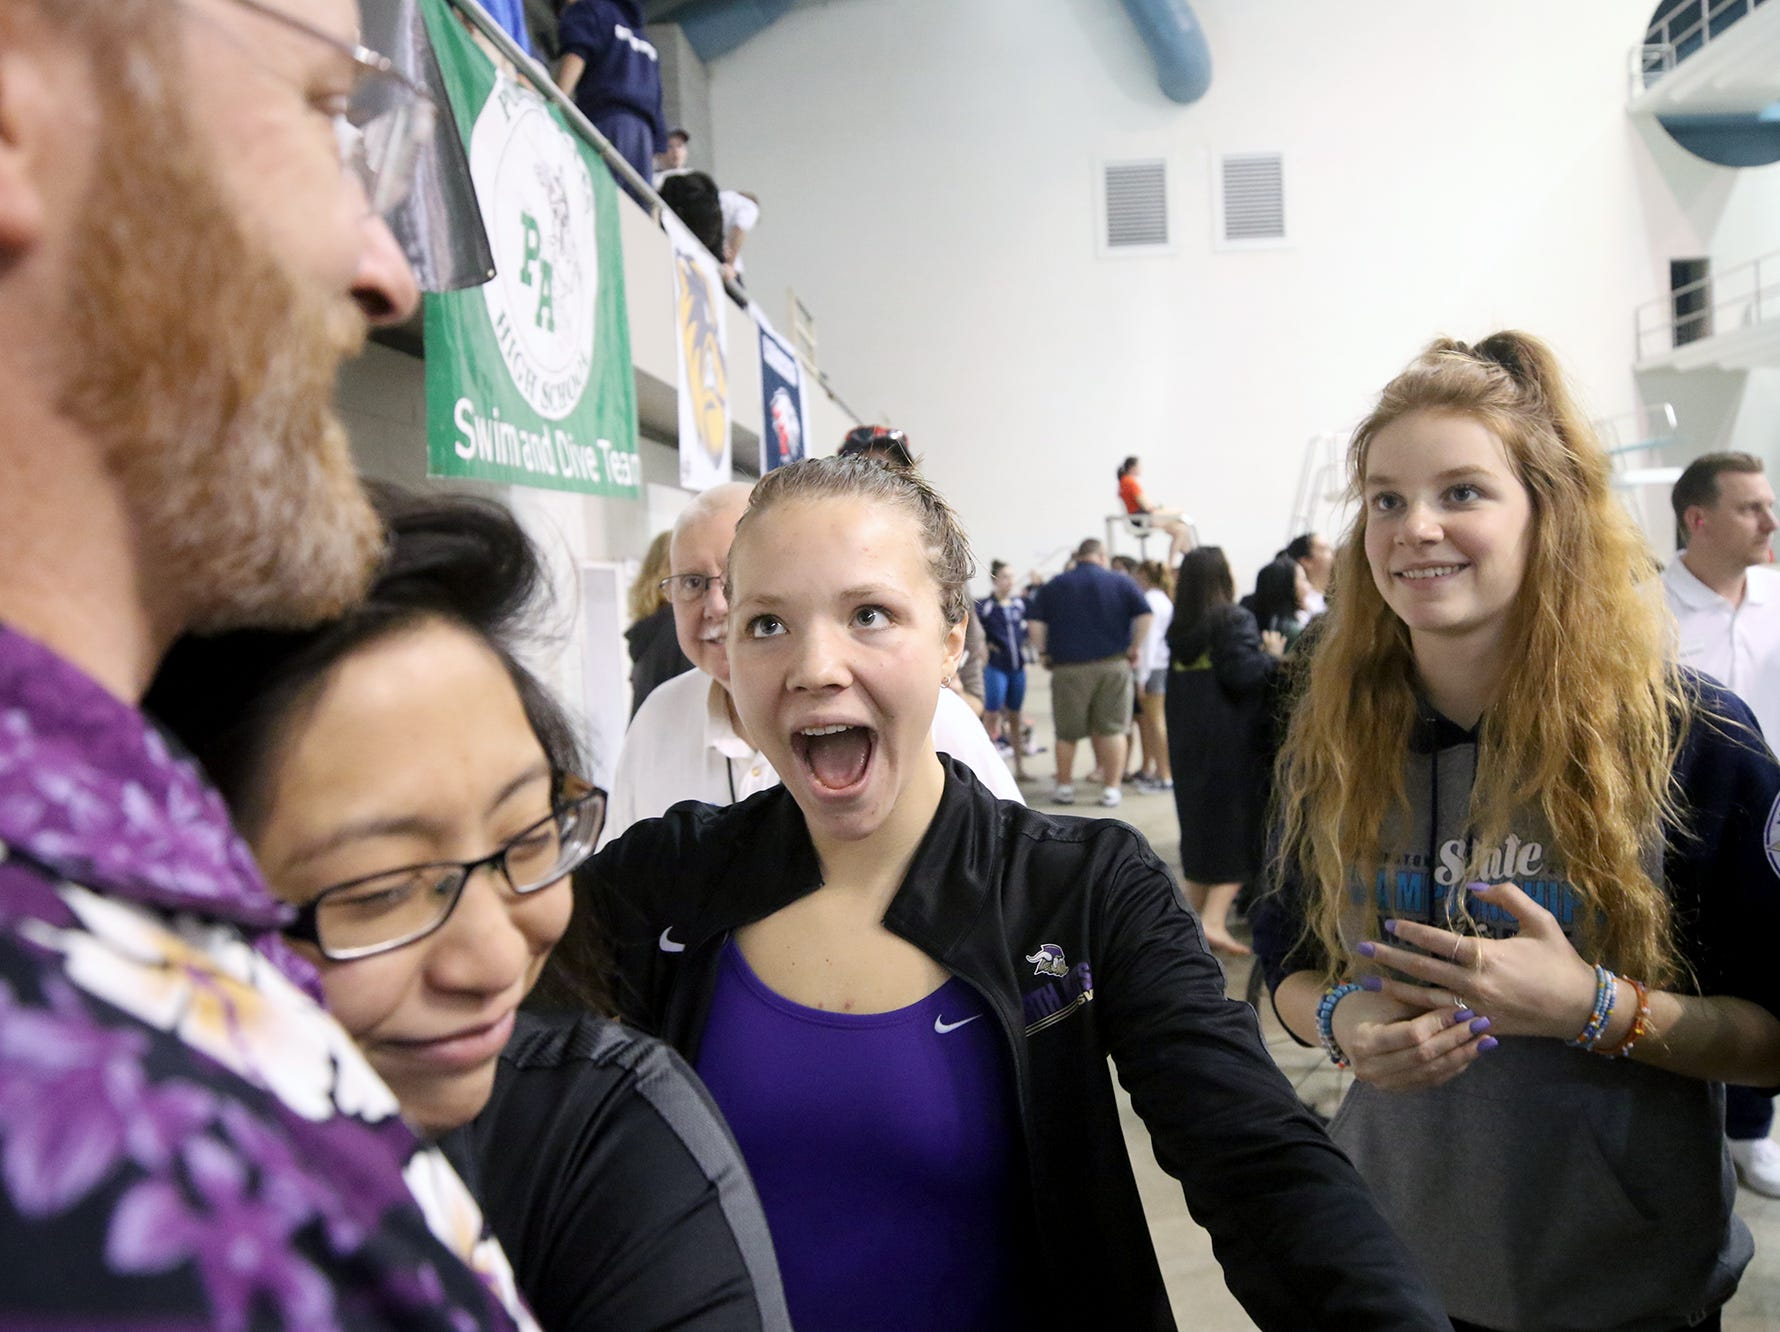 The North Kitsap Girls swim team won the team title at the 2018 2A Girls State Swim & Diving Championships on Saturday, November, 10, 2018 at the King County Aquatics Center, in Federal Way.  North Kitsap swimmers pose with the swimming title trophy. Swimmer Eleanor Beers reacts after coach Greg Braun won the coach of the meet.